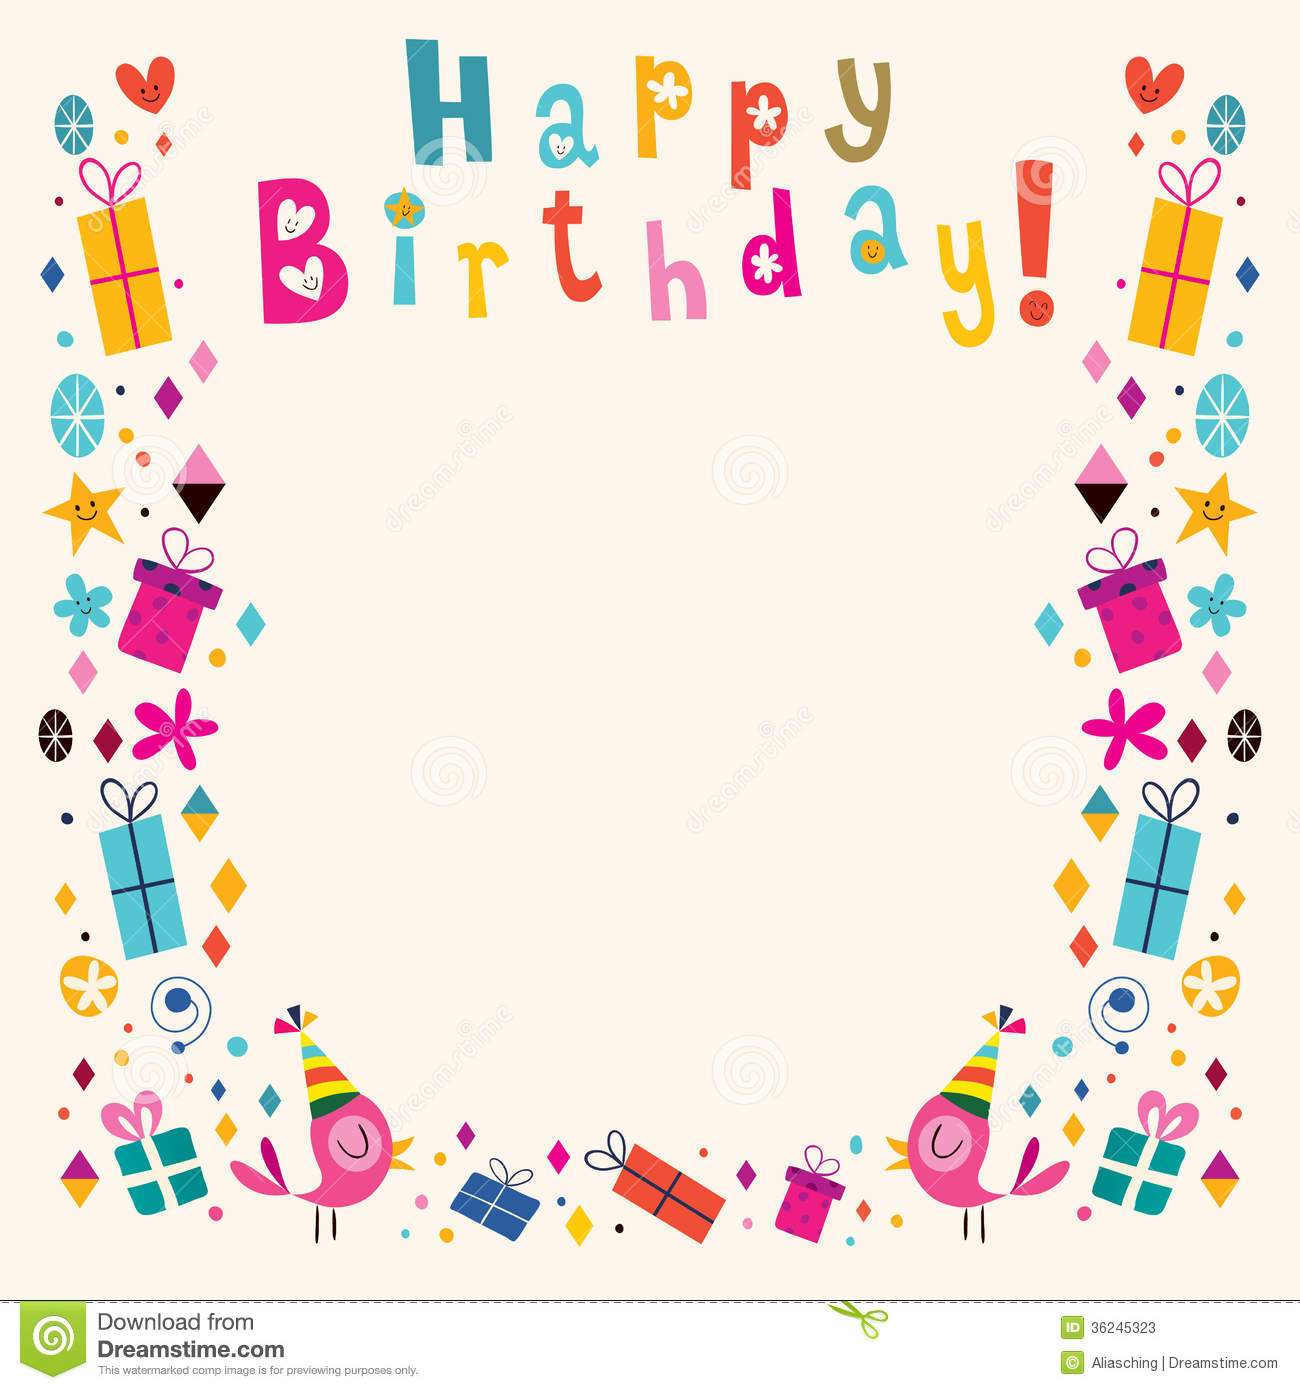 Birthday picture frame clipart graphic freeuse library Happy birthday frame clipart 3 » Clipart Portal graphic freeuse library